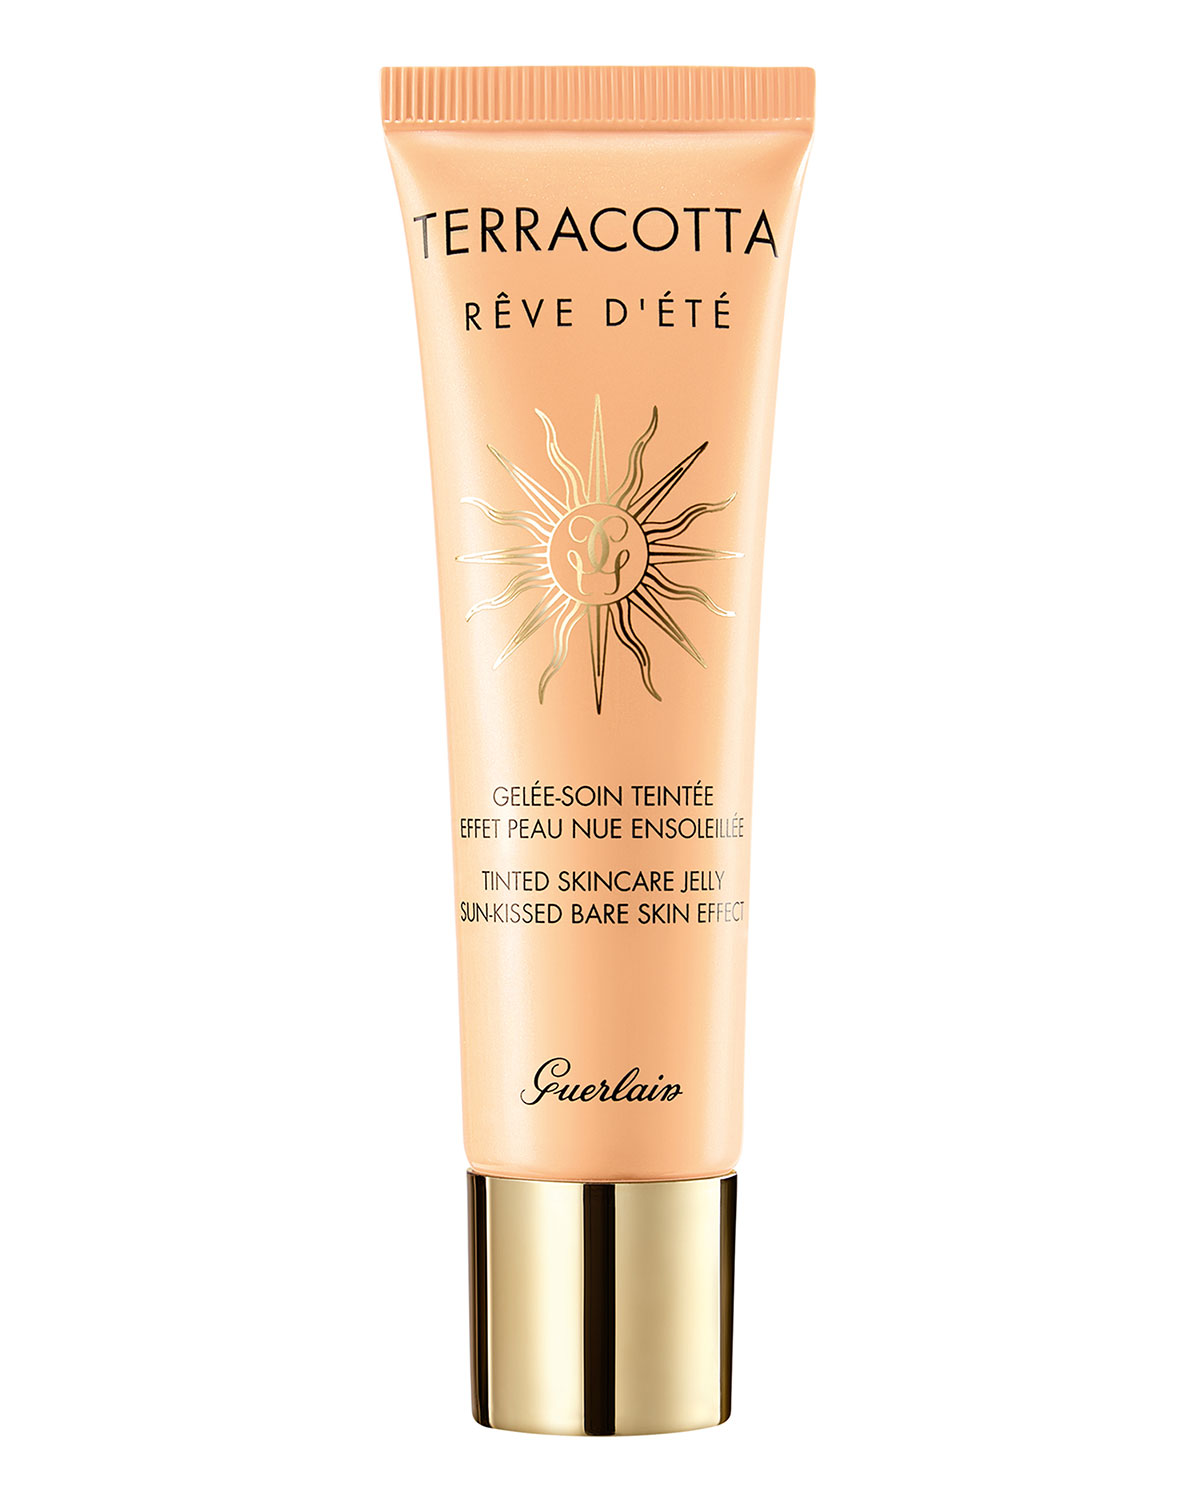 Terracotta Tinted Skincare Jelly, 1.0 oz./ 30 mL